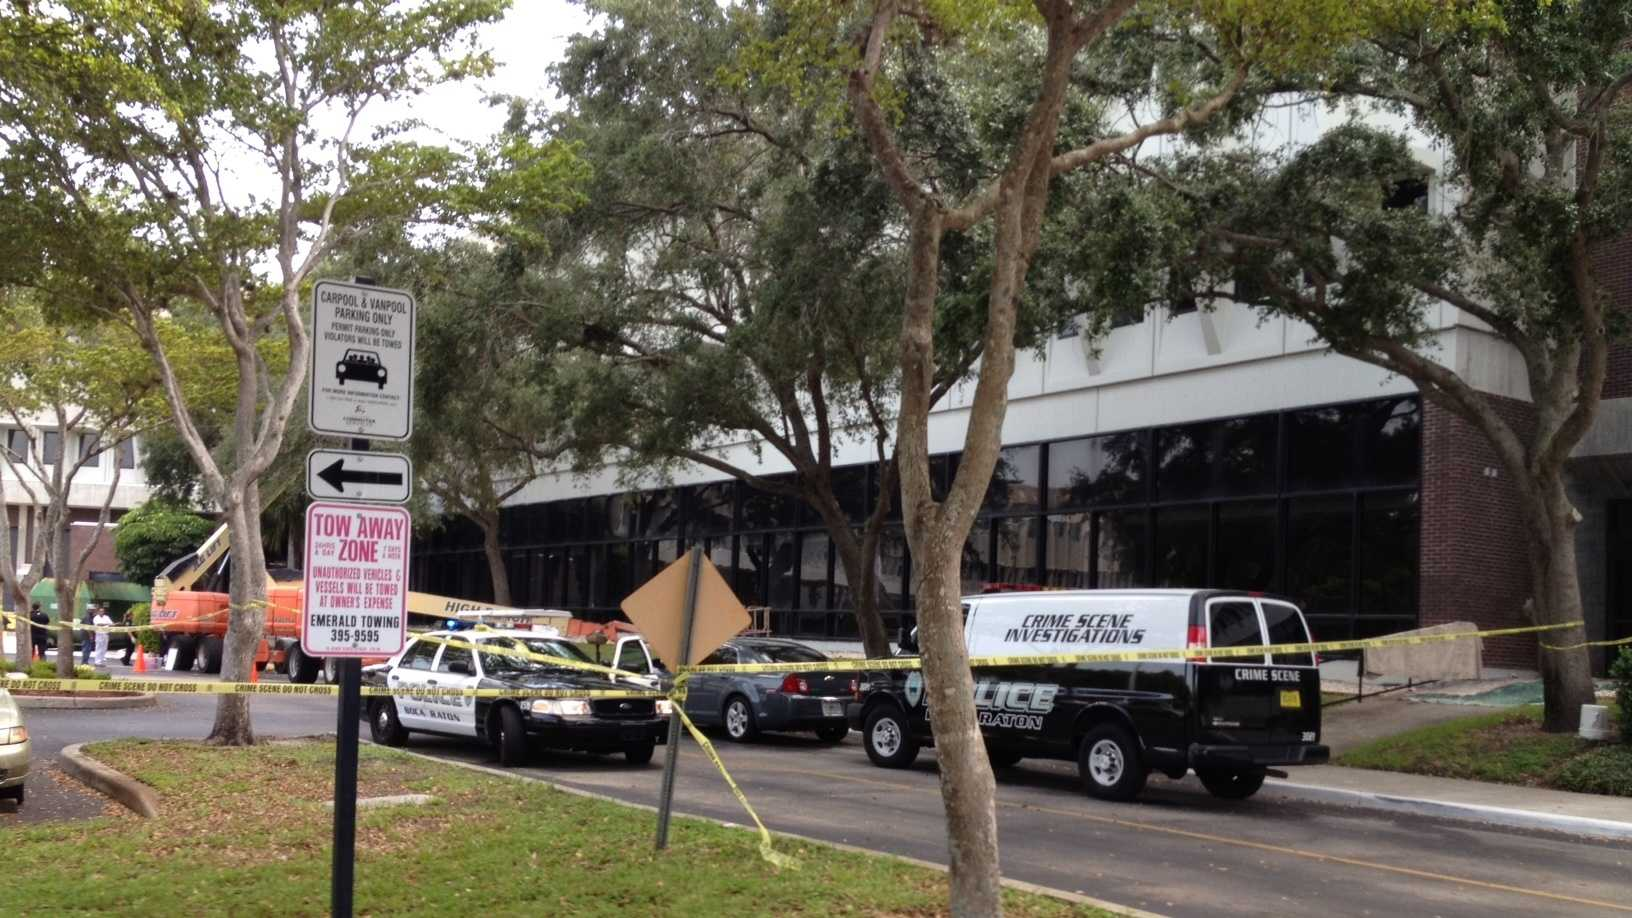 Two painters fell about 30 feet from the elevated platform of a bucket truck and were taken to Delray Medical Center in critical condition.